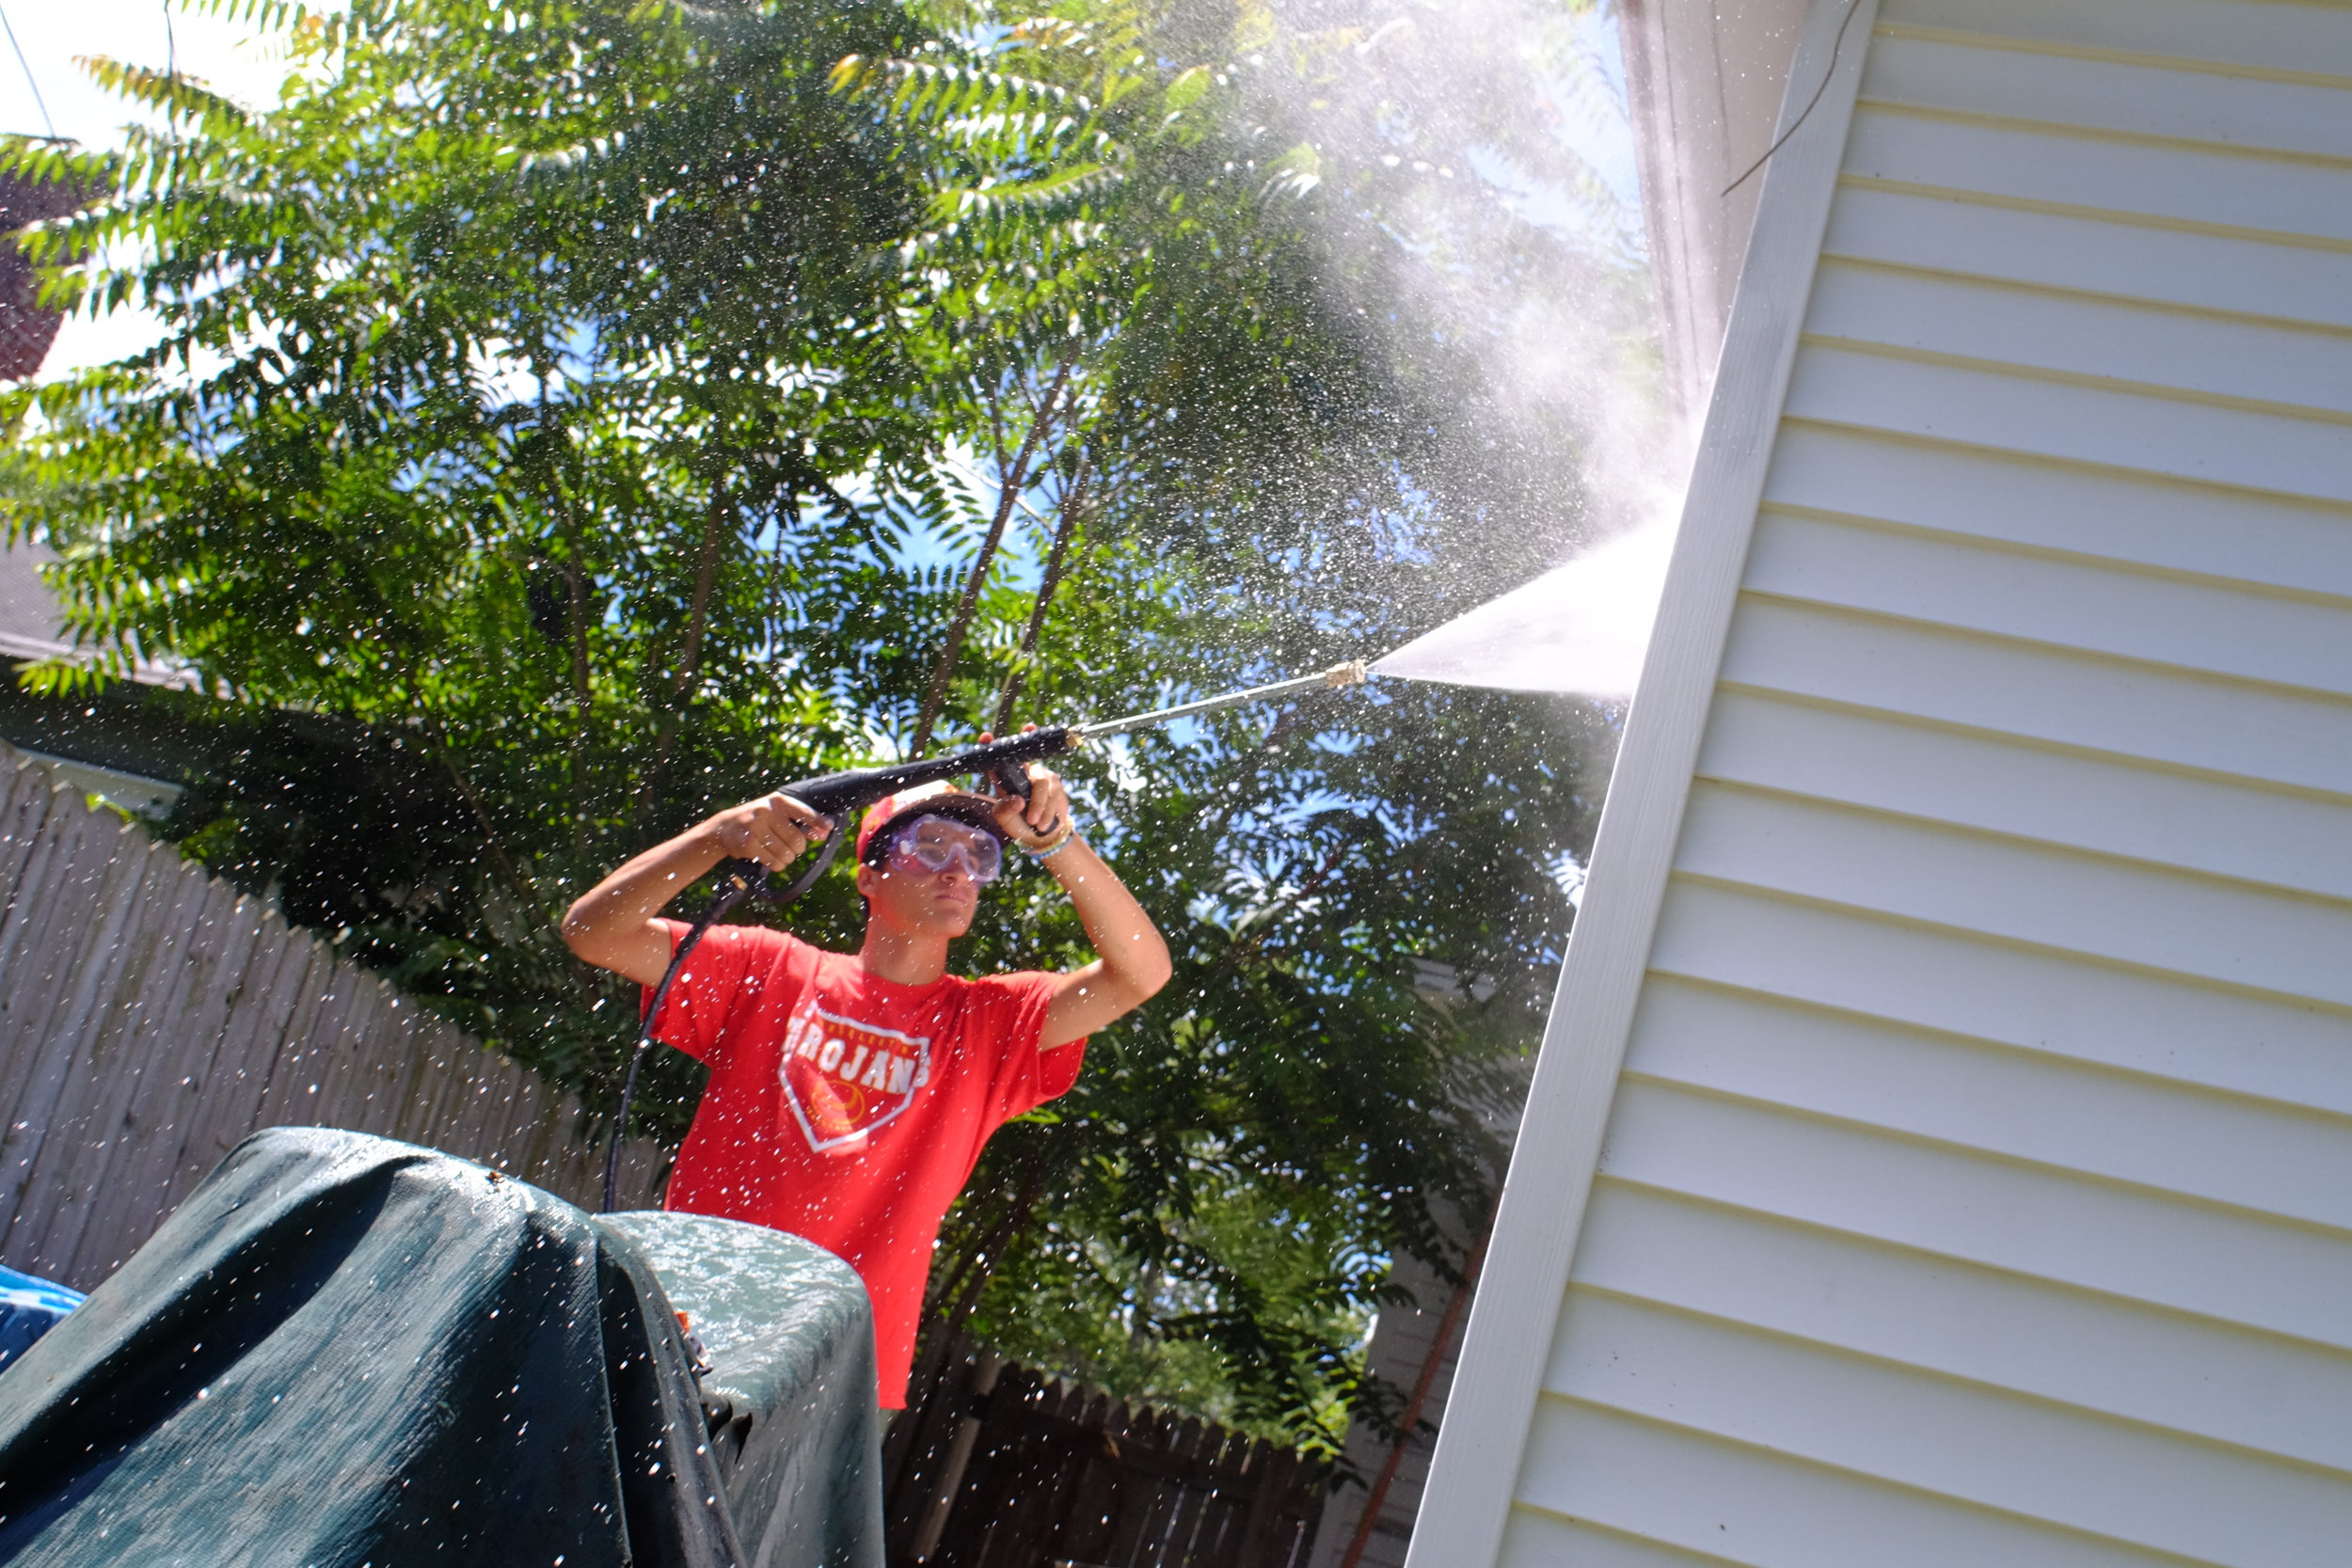 Volunteer from Catholic Heart work Camp cleaning siding on 4th street.